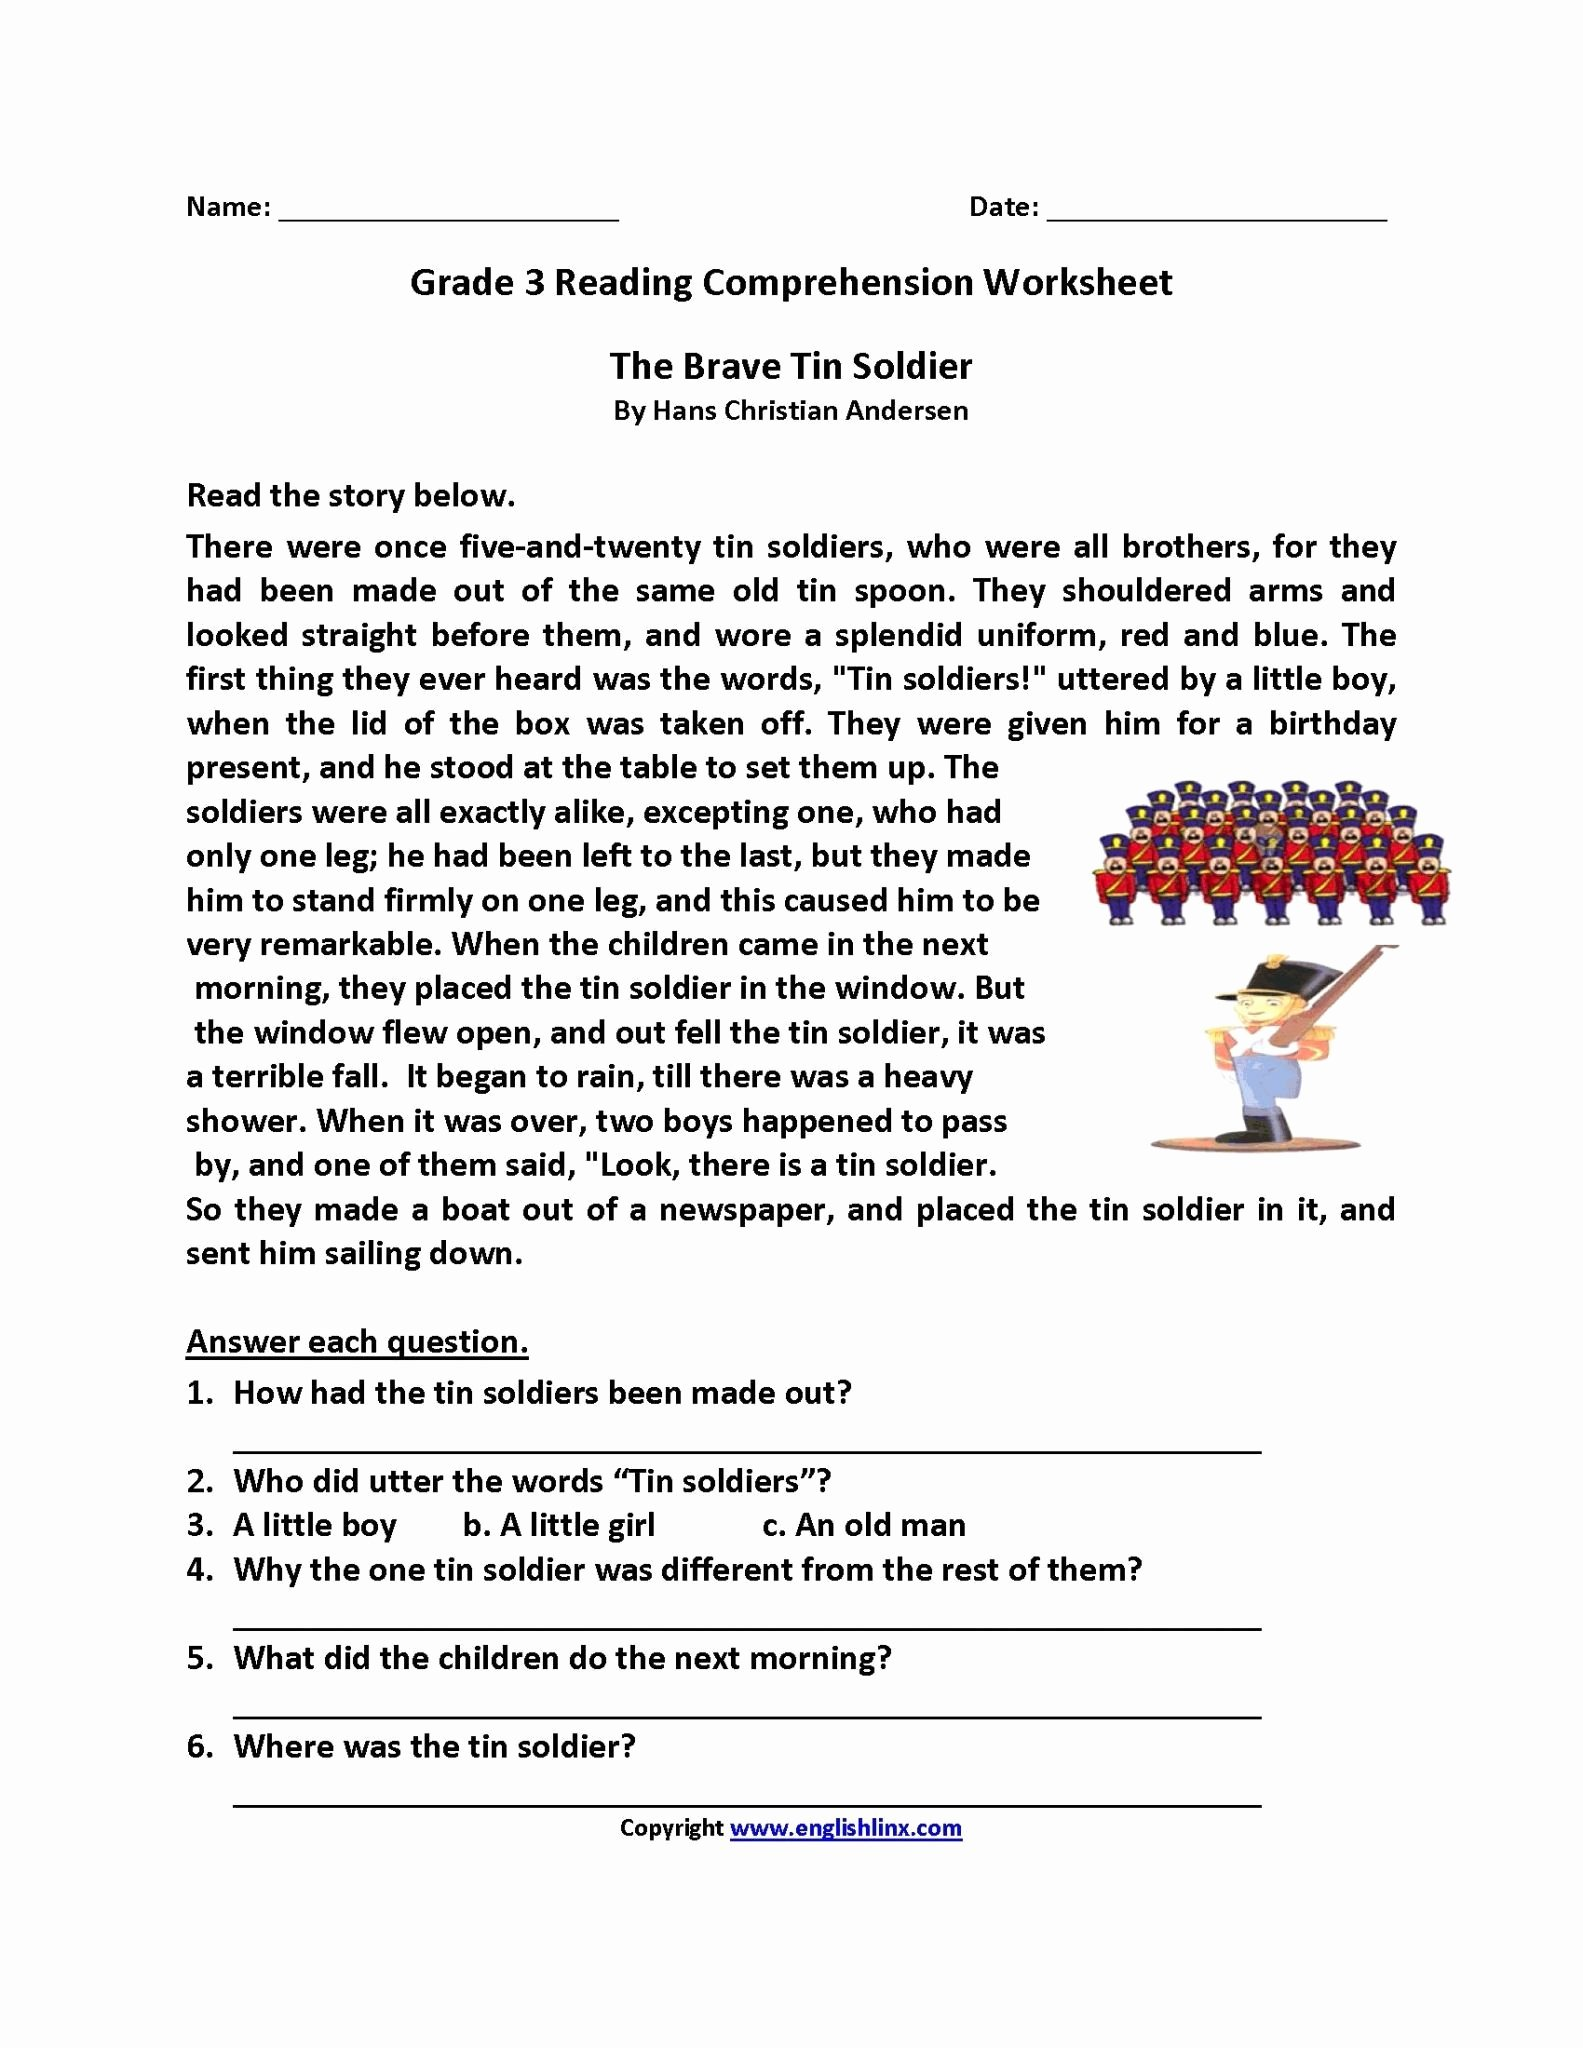 Comprehension Worksheets for Grade 2 Kids Math Worksheet Tremendous Grade 2 Reading Prehension